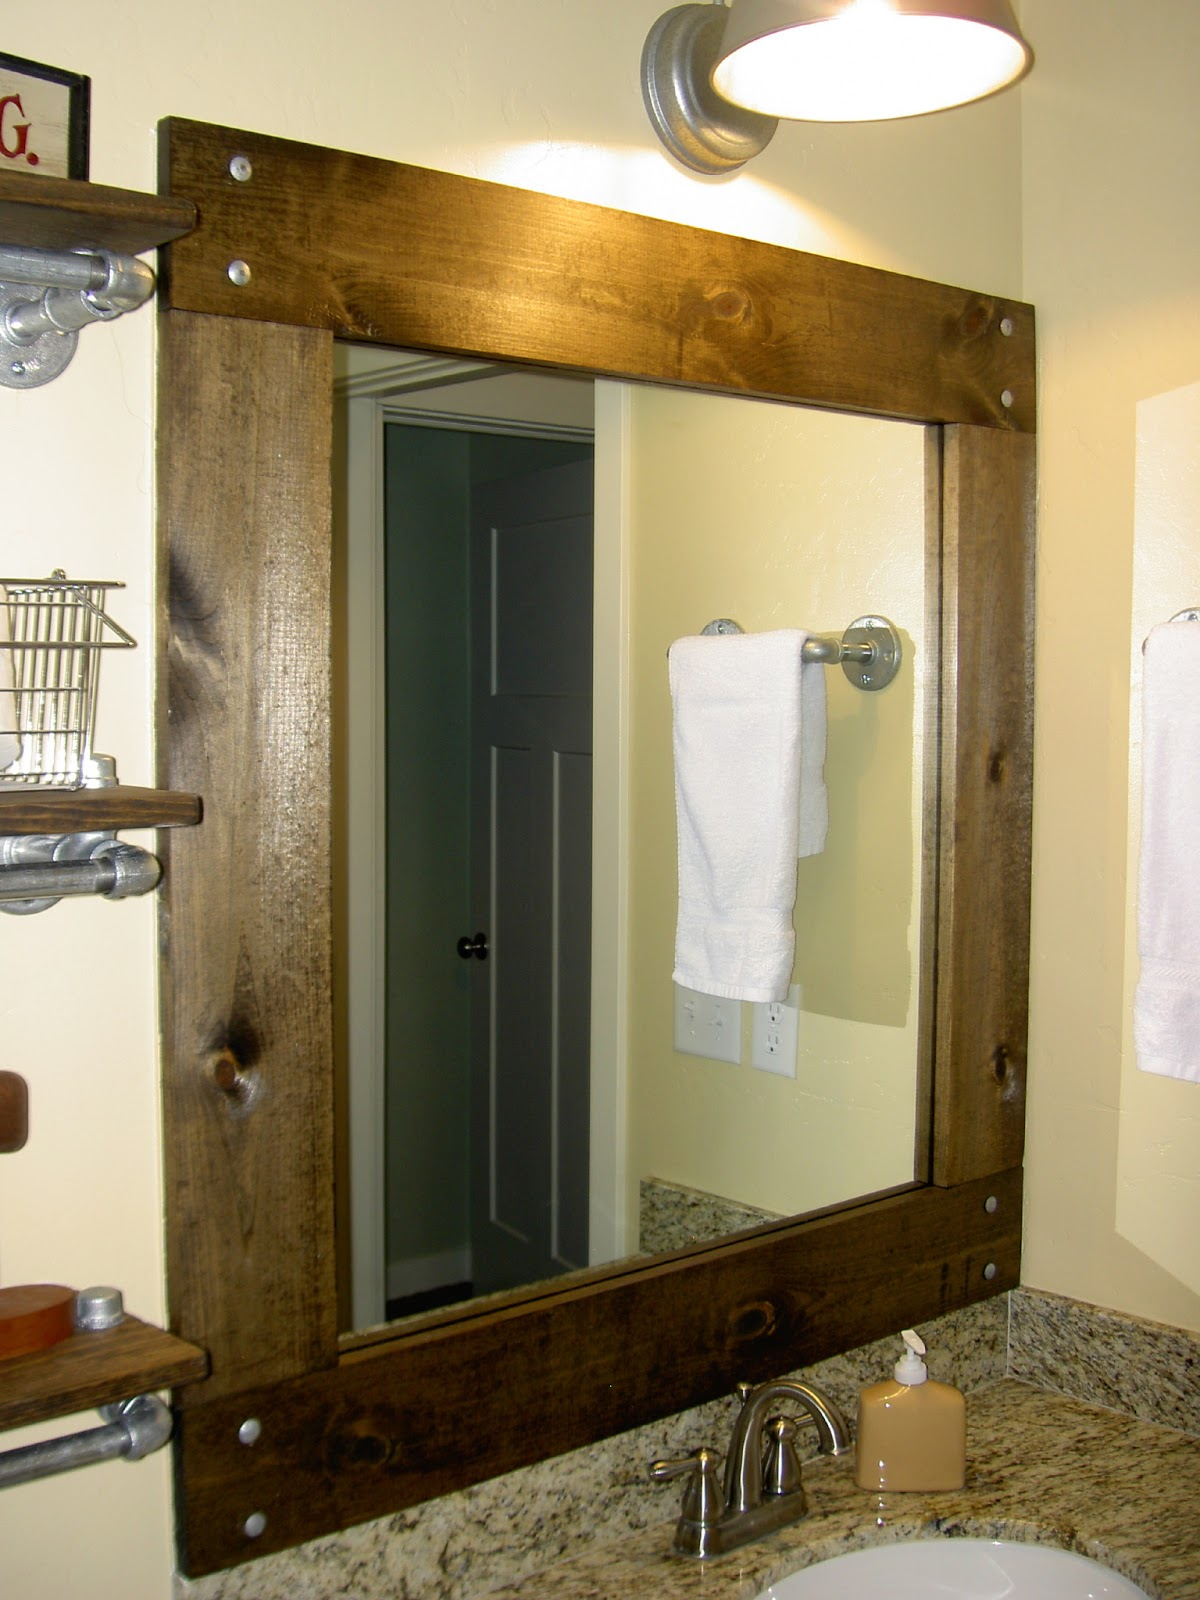 chapman place: framed bathroom mirror